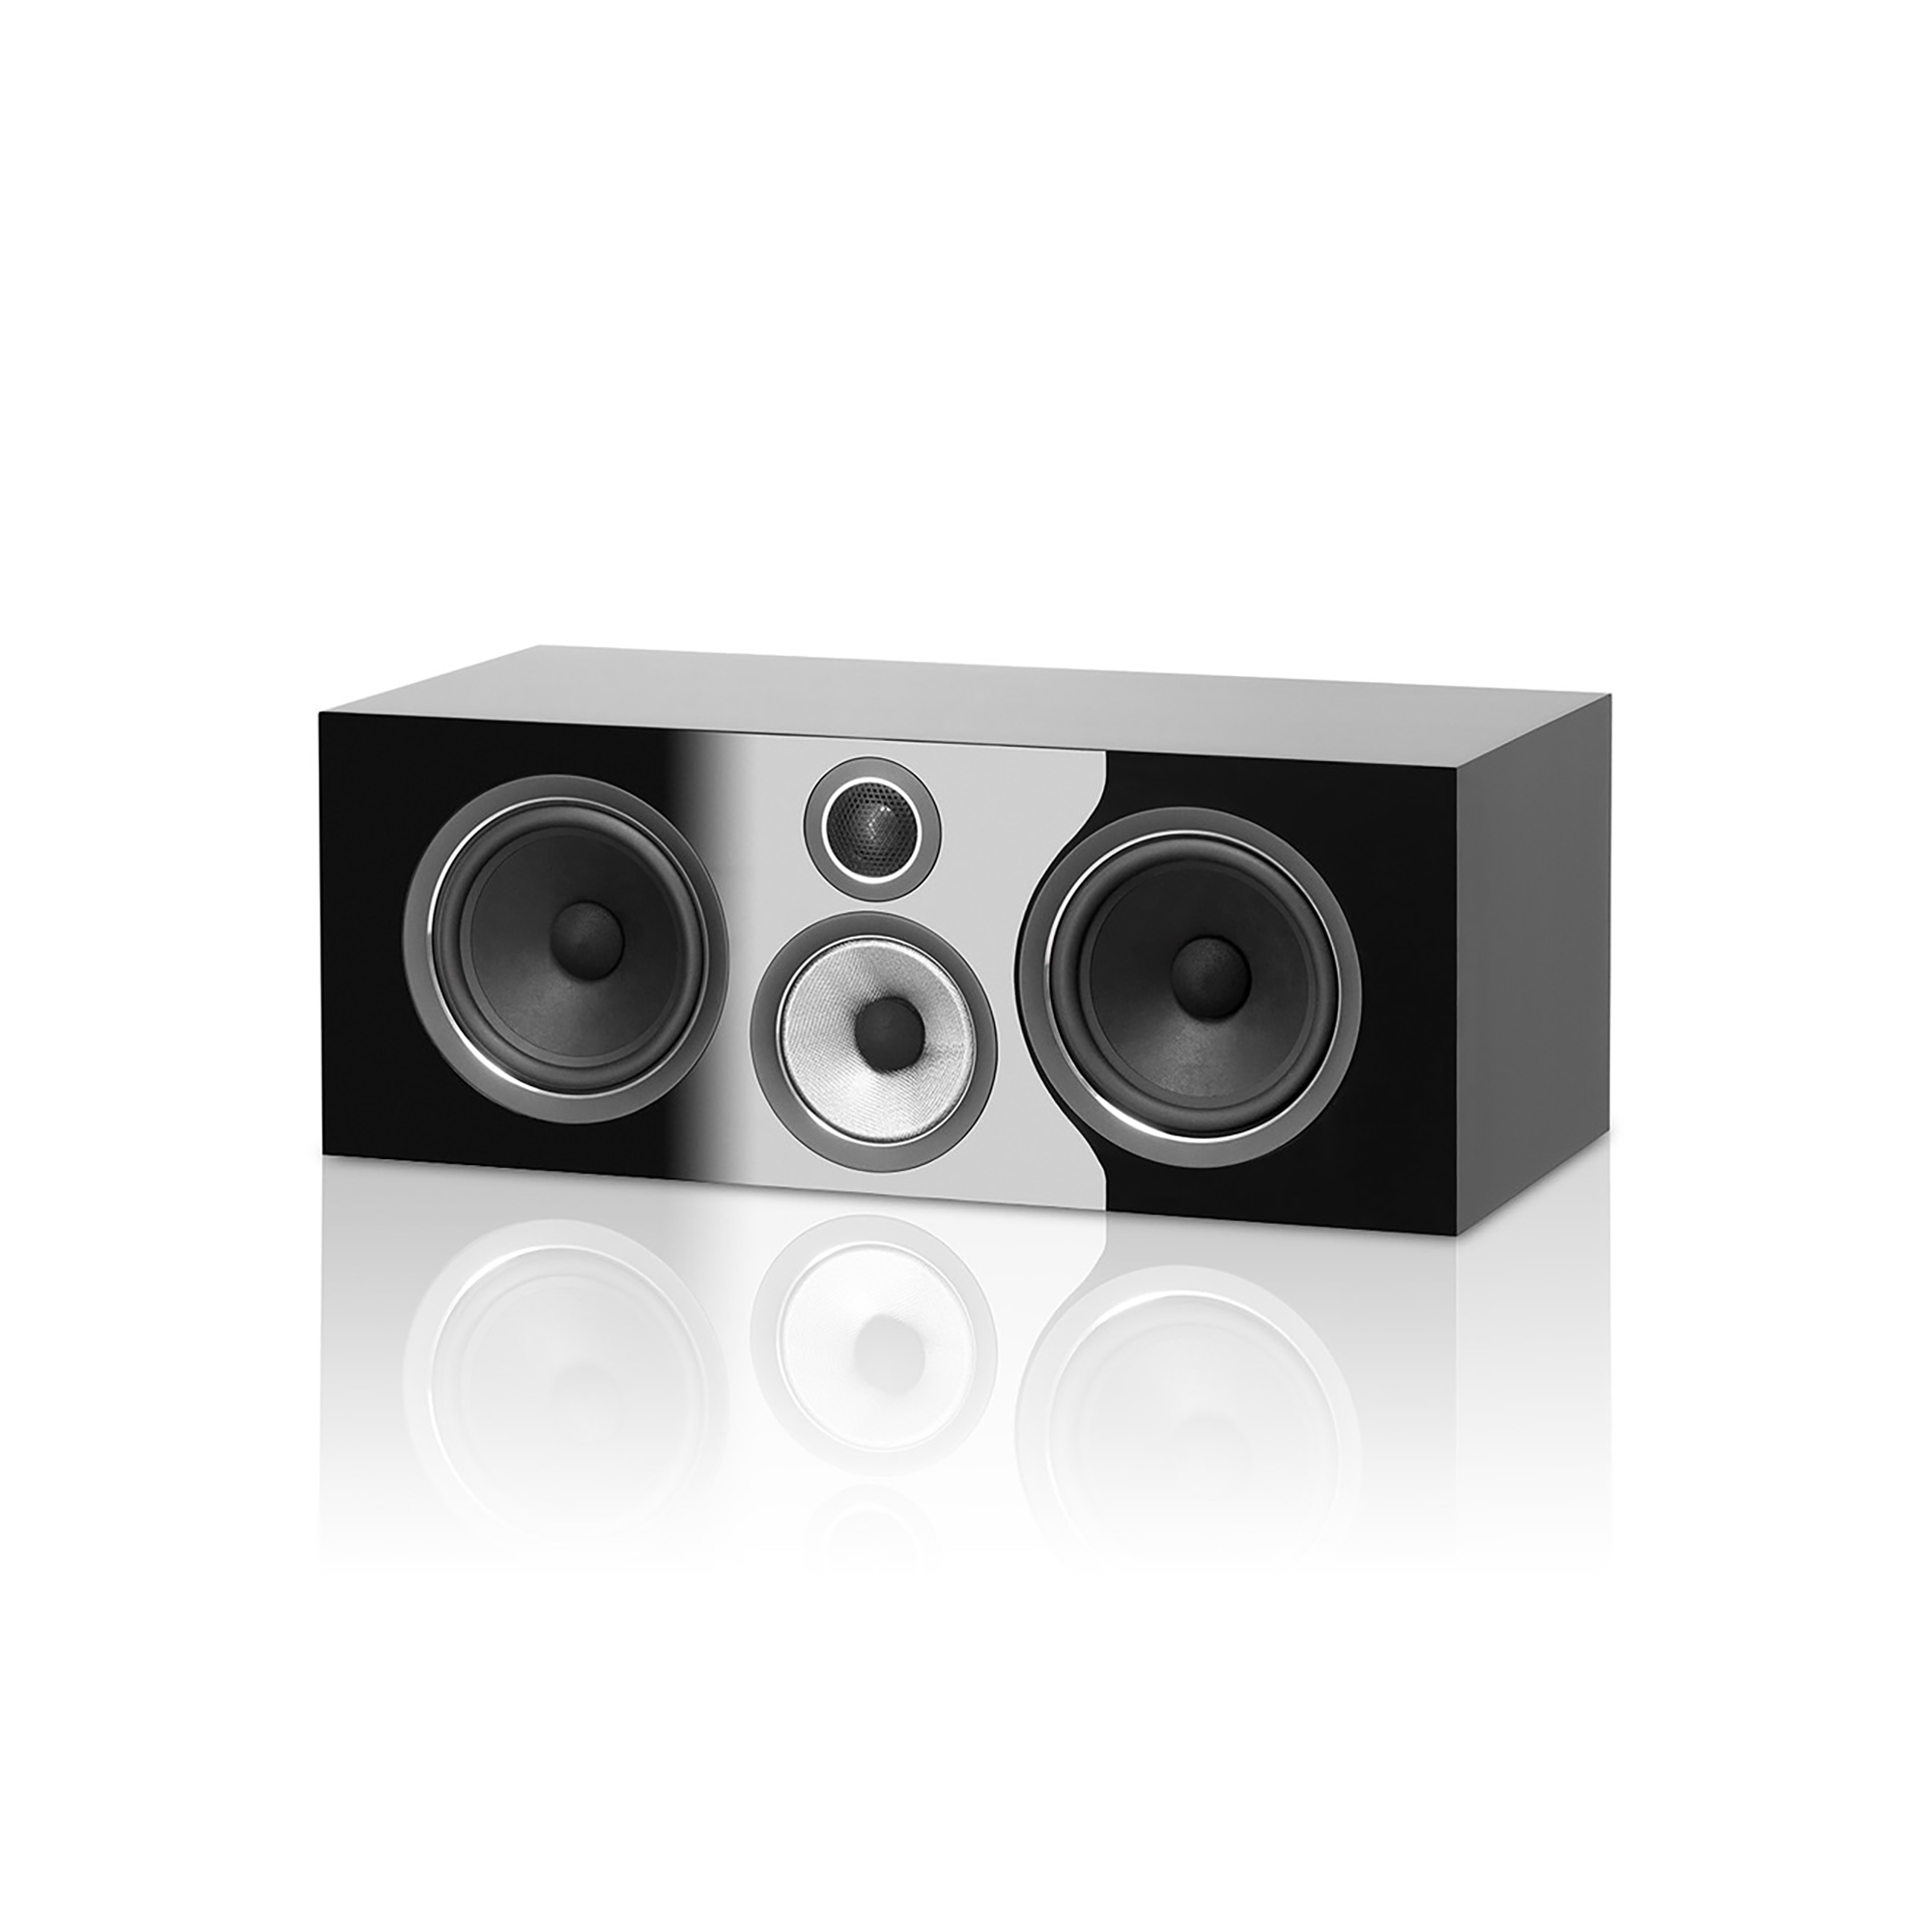 Bowers & Wilkins HTM71 S2 Caixa Central ( Gloss Black )